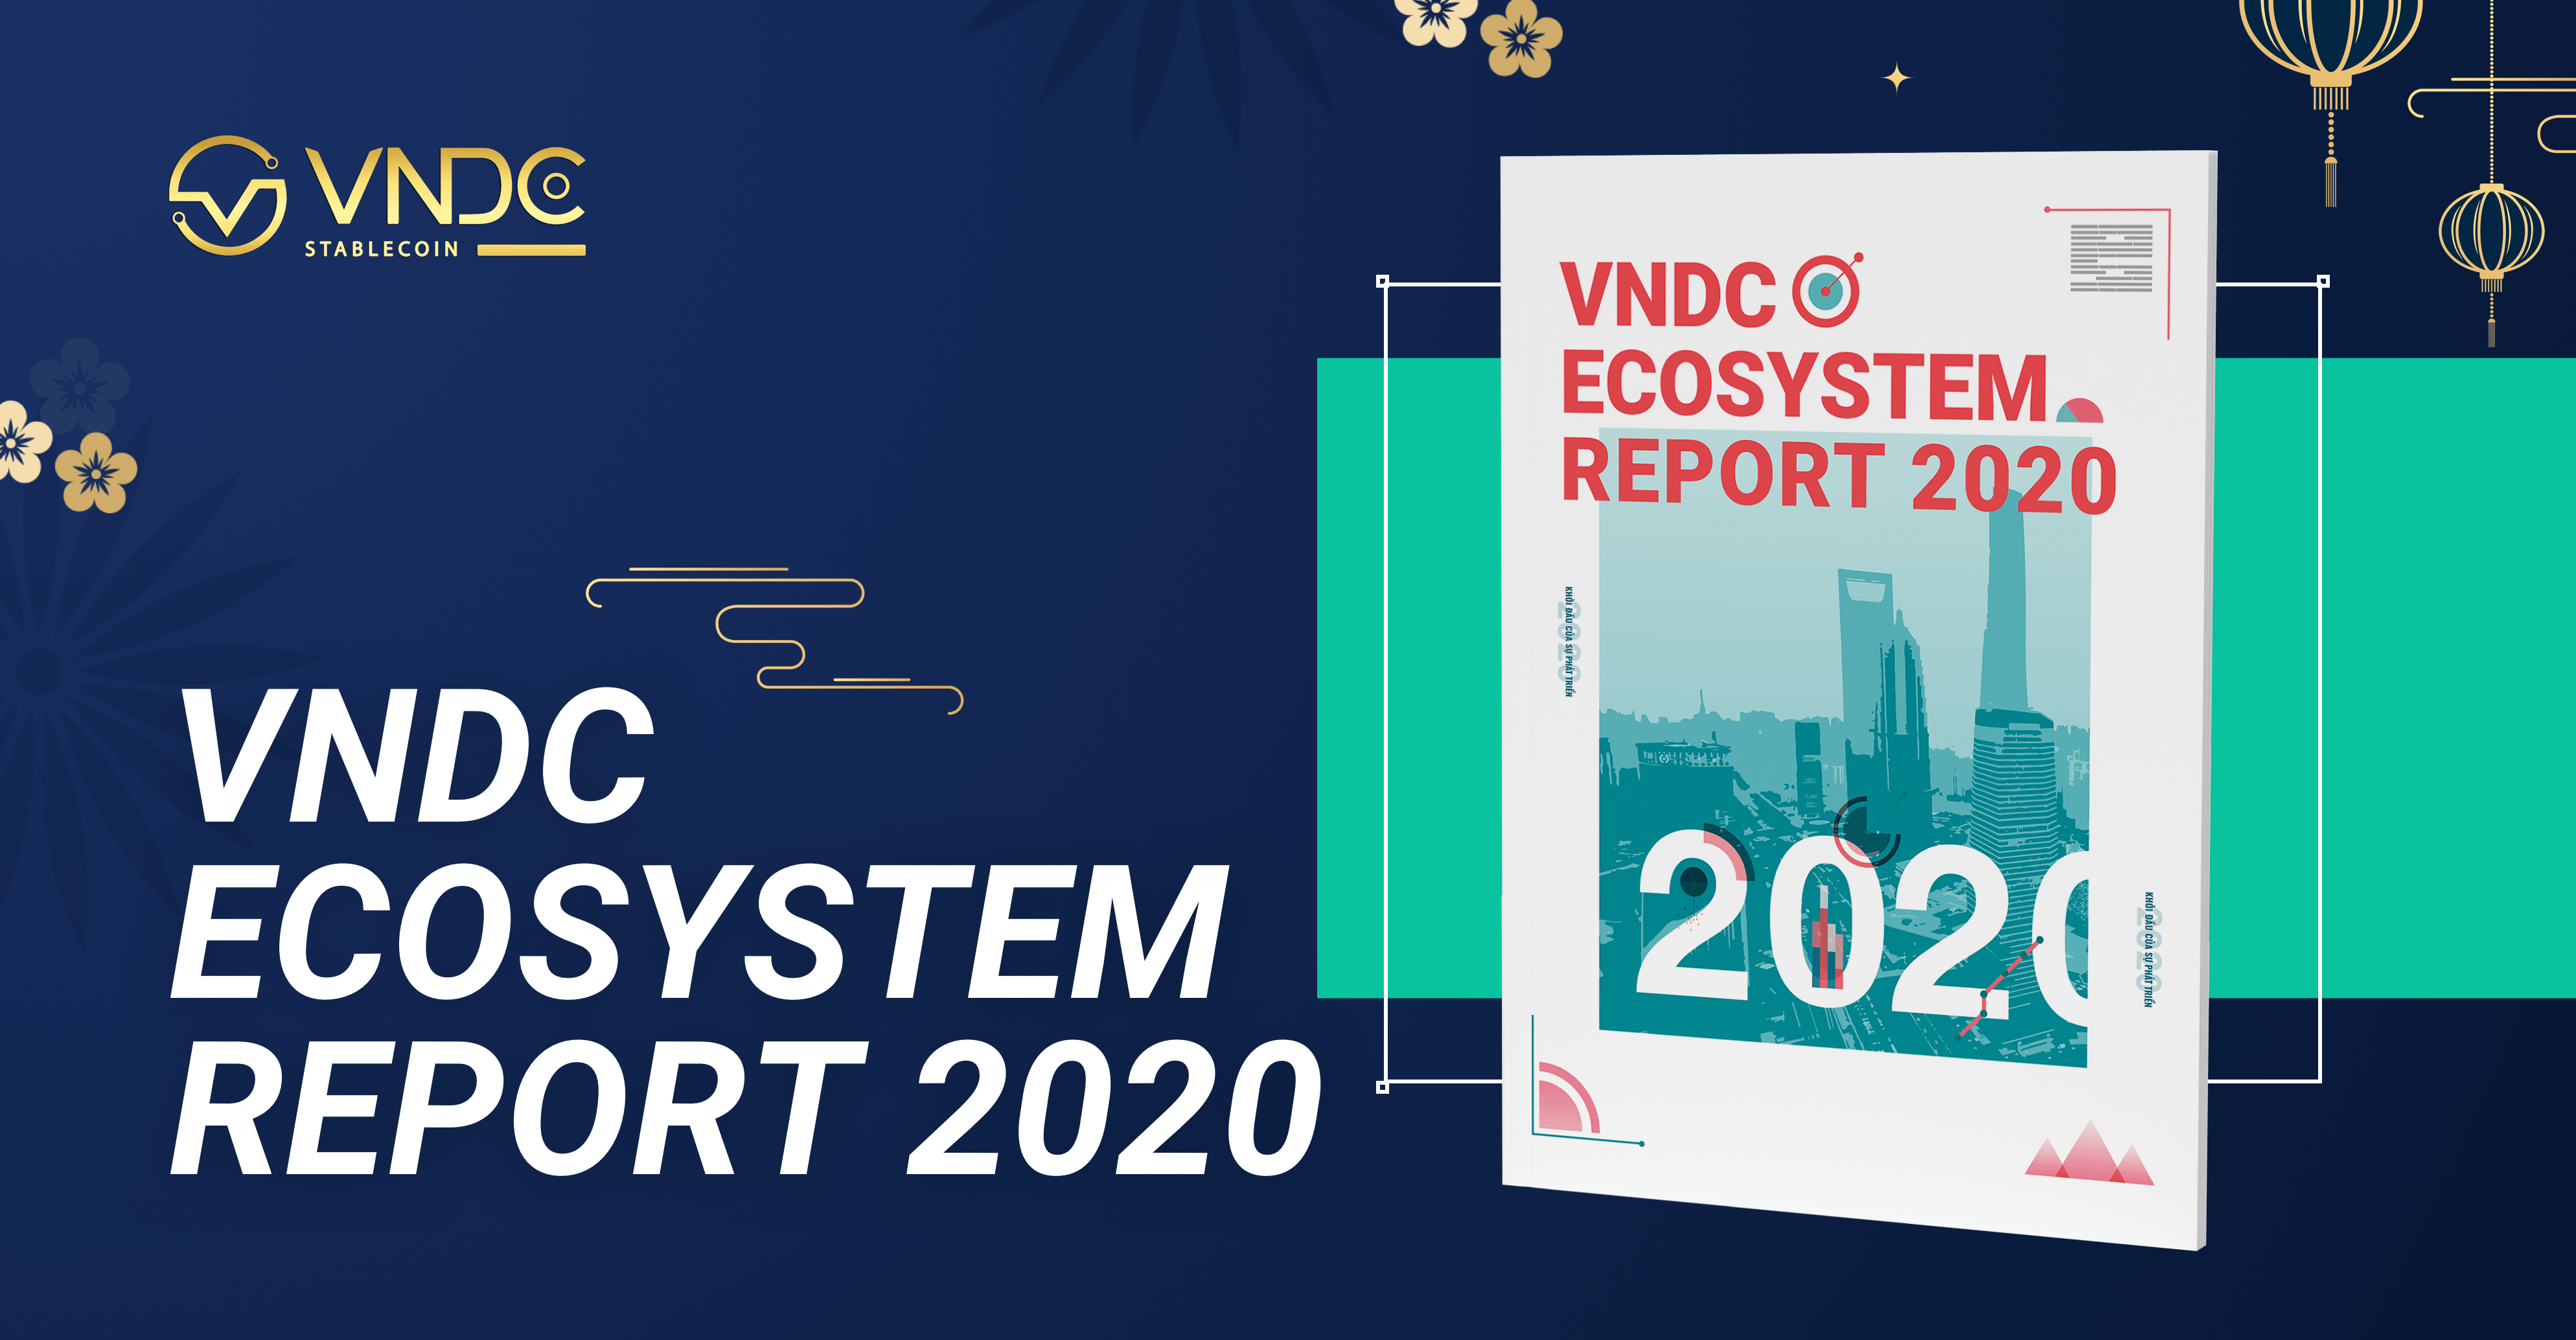 VNDC releases VNDC Ecosystem Report 2020